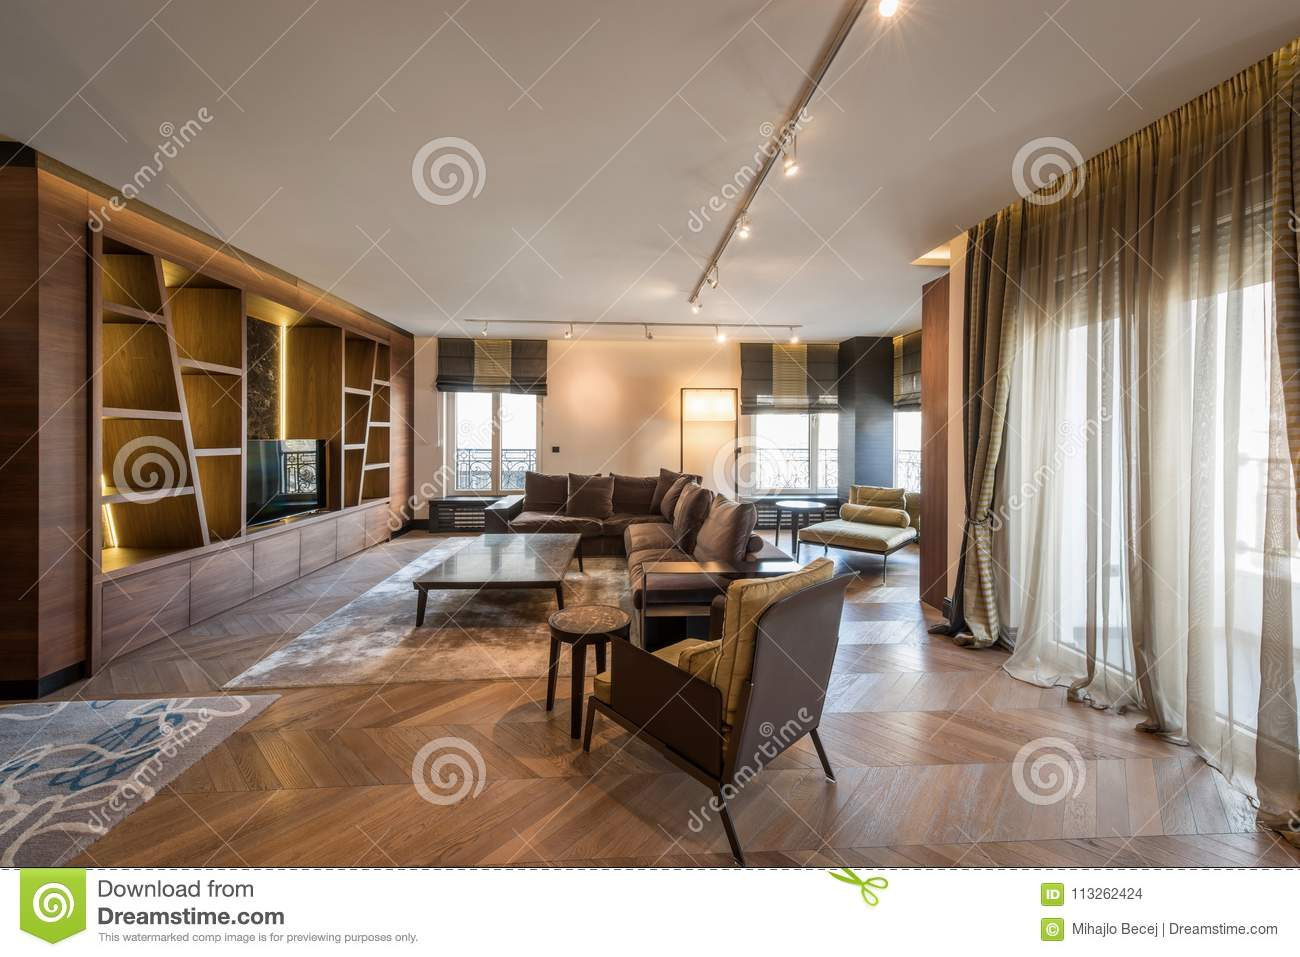 Interior of a luxury apartment, modern open plan living room